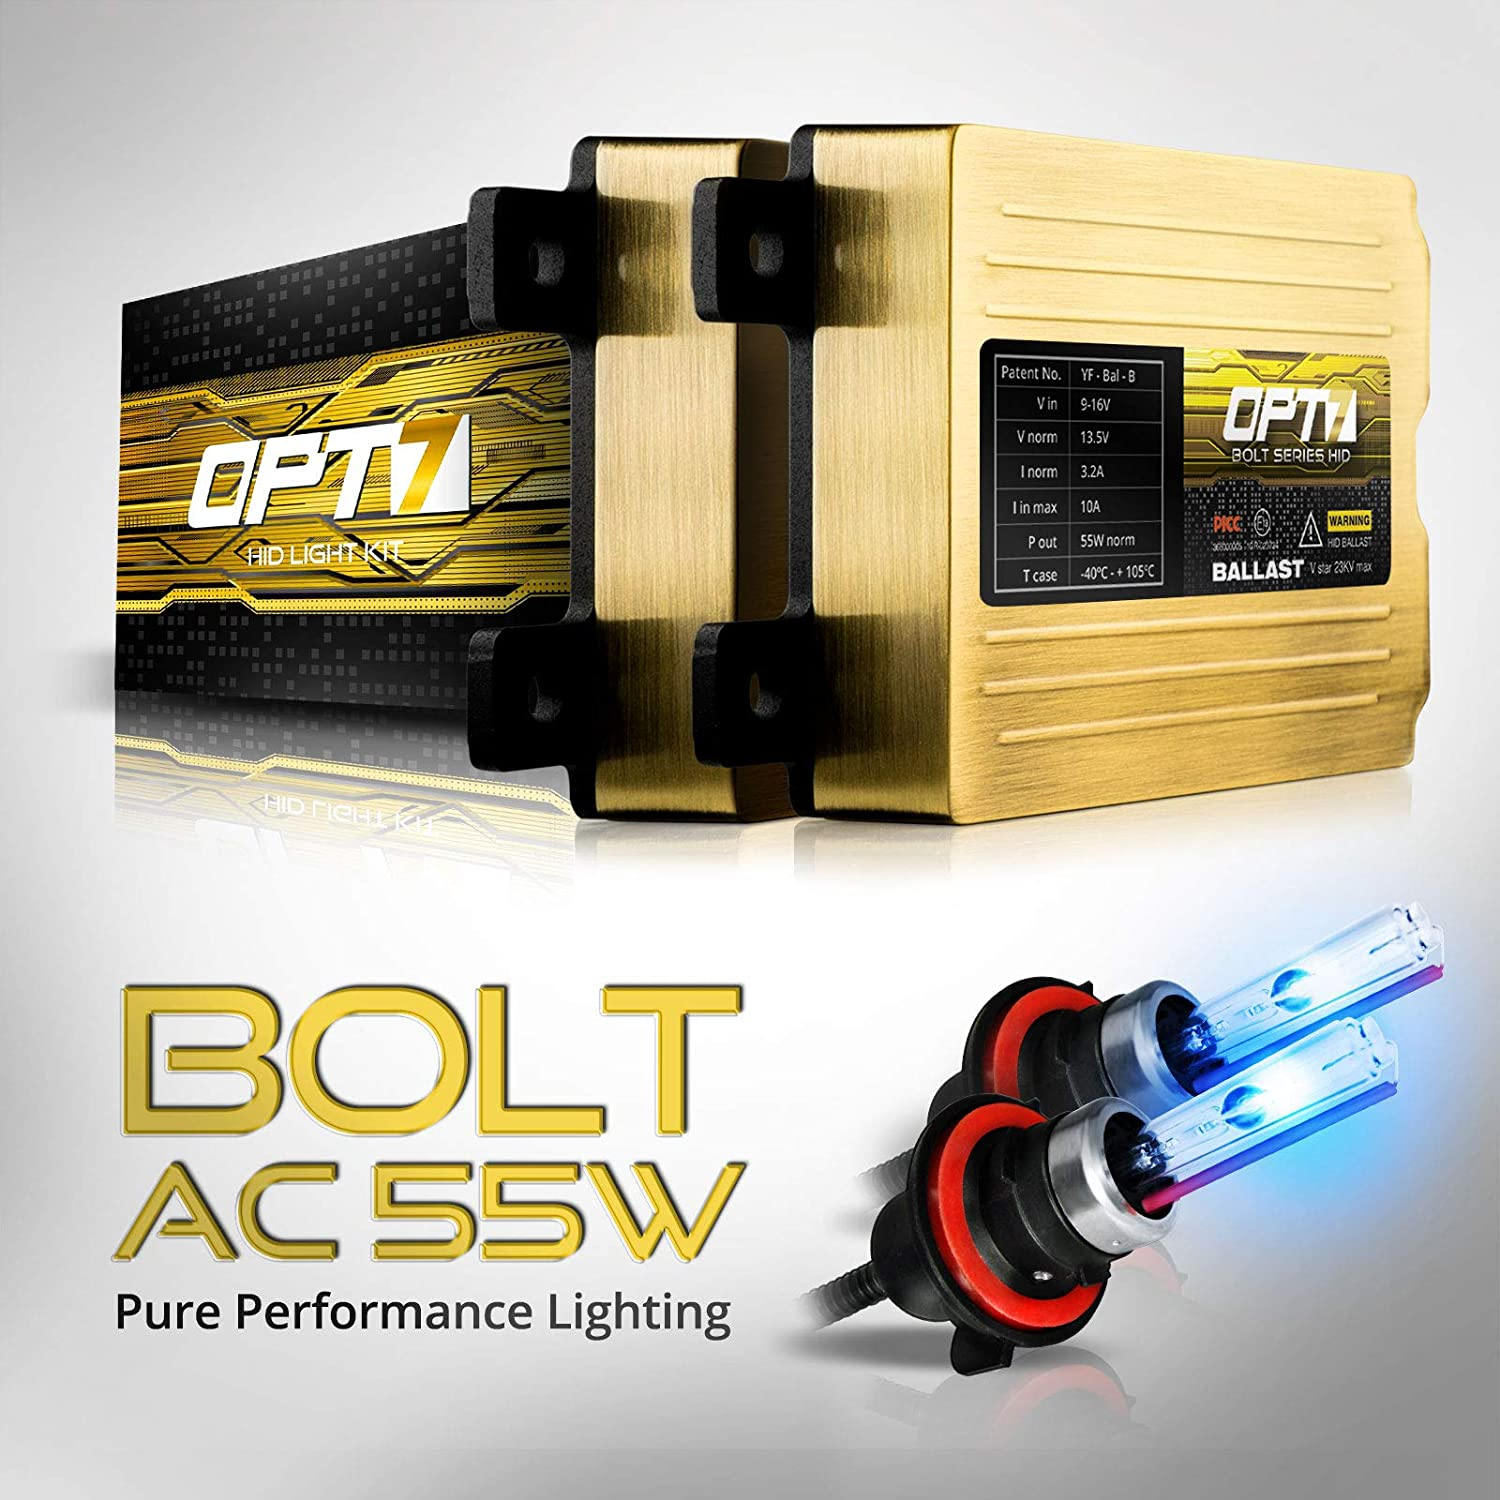 2 Yr Warranty 6x Longer Life All Bulb Sizes and Colors 10000K Deep Blue Light 5x Brighter OPT7 Bolt AC 55w H13 Bi-Xenon HID Kit